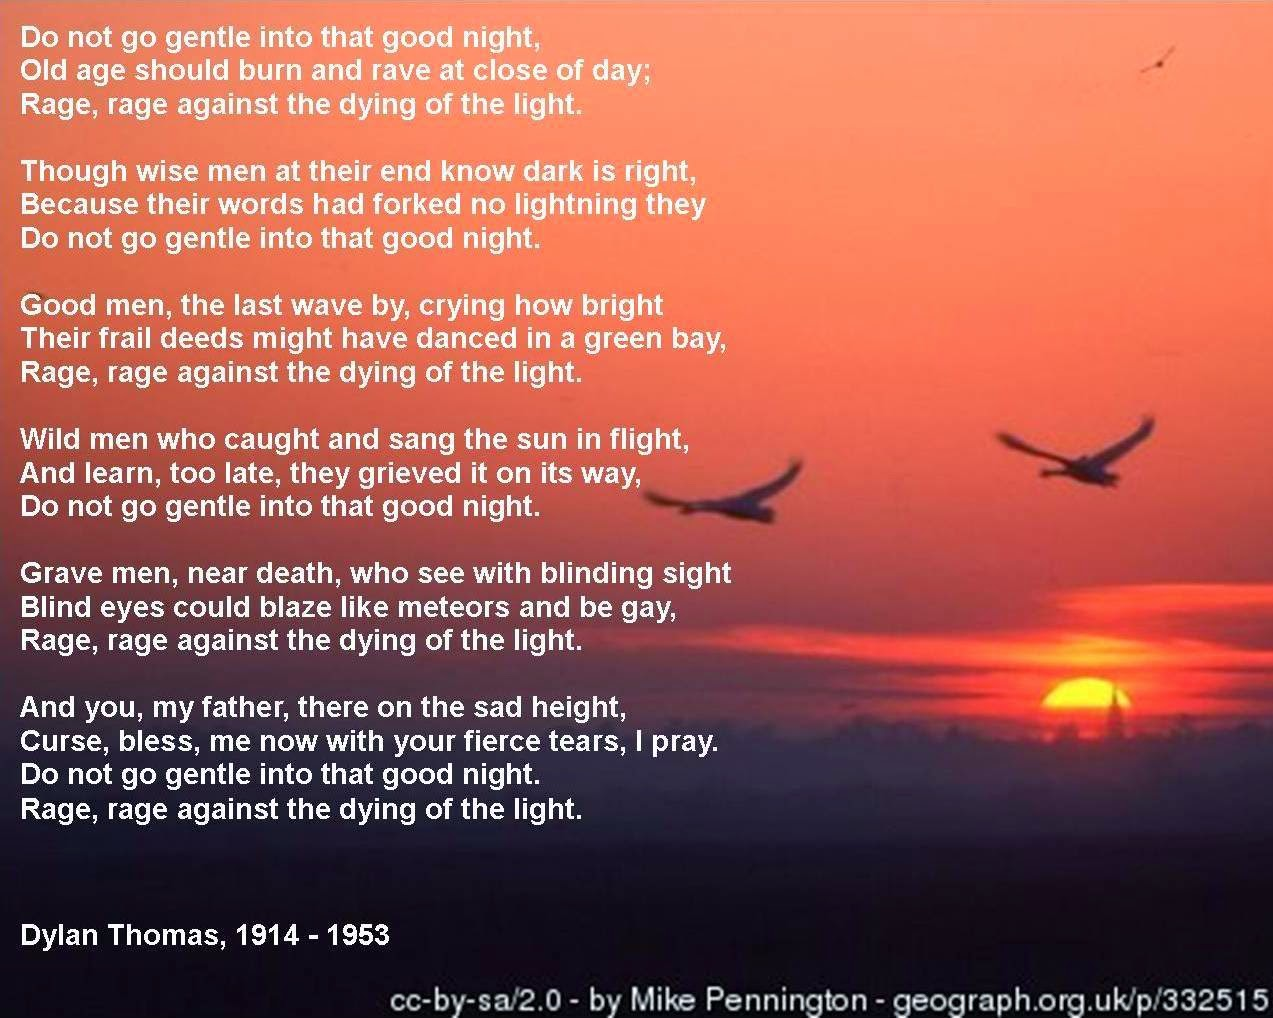 compare and contrast between do not go gentle into that good night and because i could not stop for  What effect does thomas' use of the villanelle form have on the tone of do not go gentle into that good night in contrast to to an athlete dying young what are the similarities and differences between each poem's presentation of death.